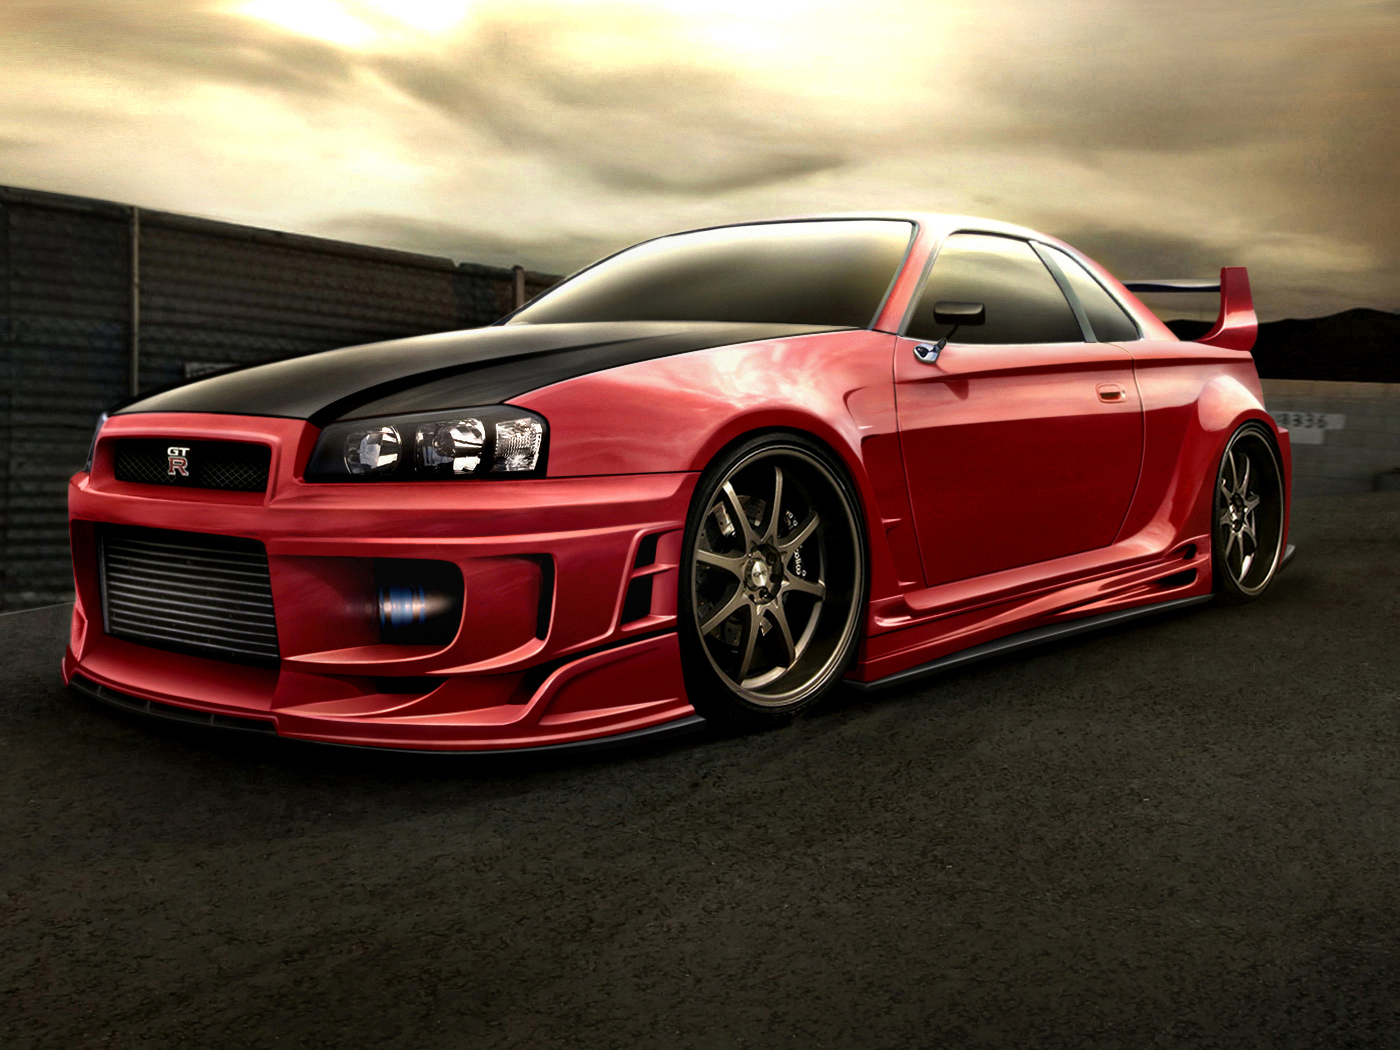 Free Download Nissan Skyline Gtr Wallpapers Beautiful Cool